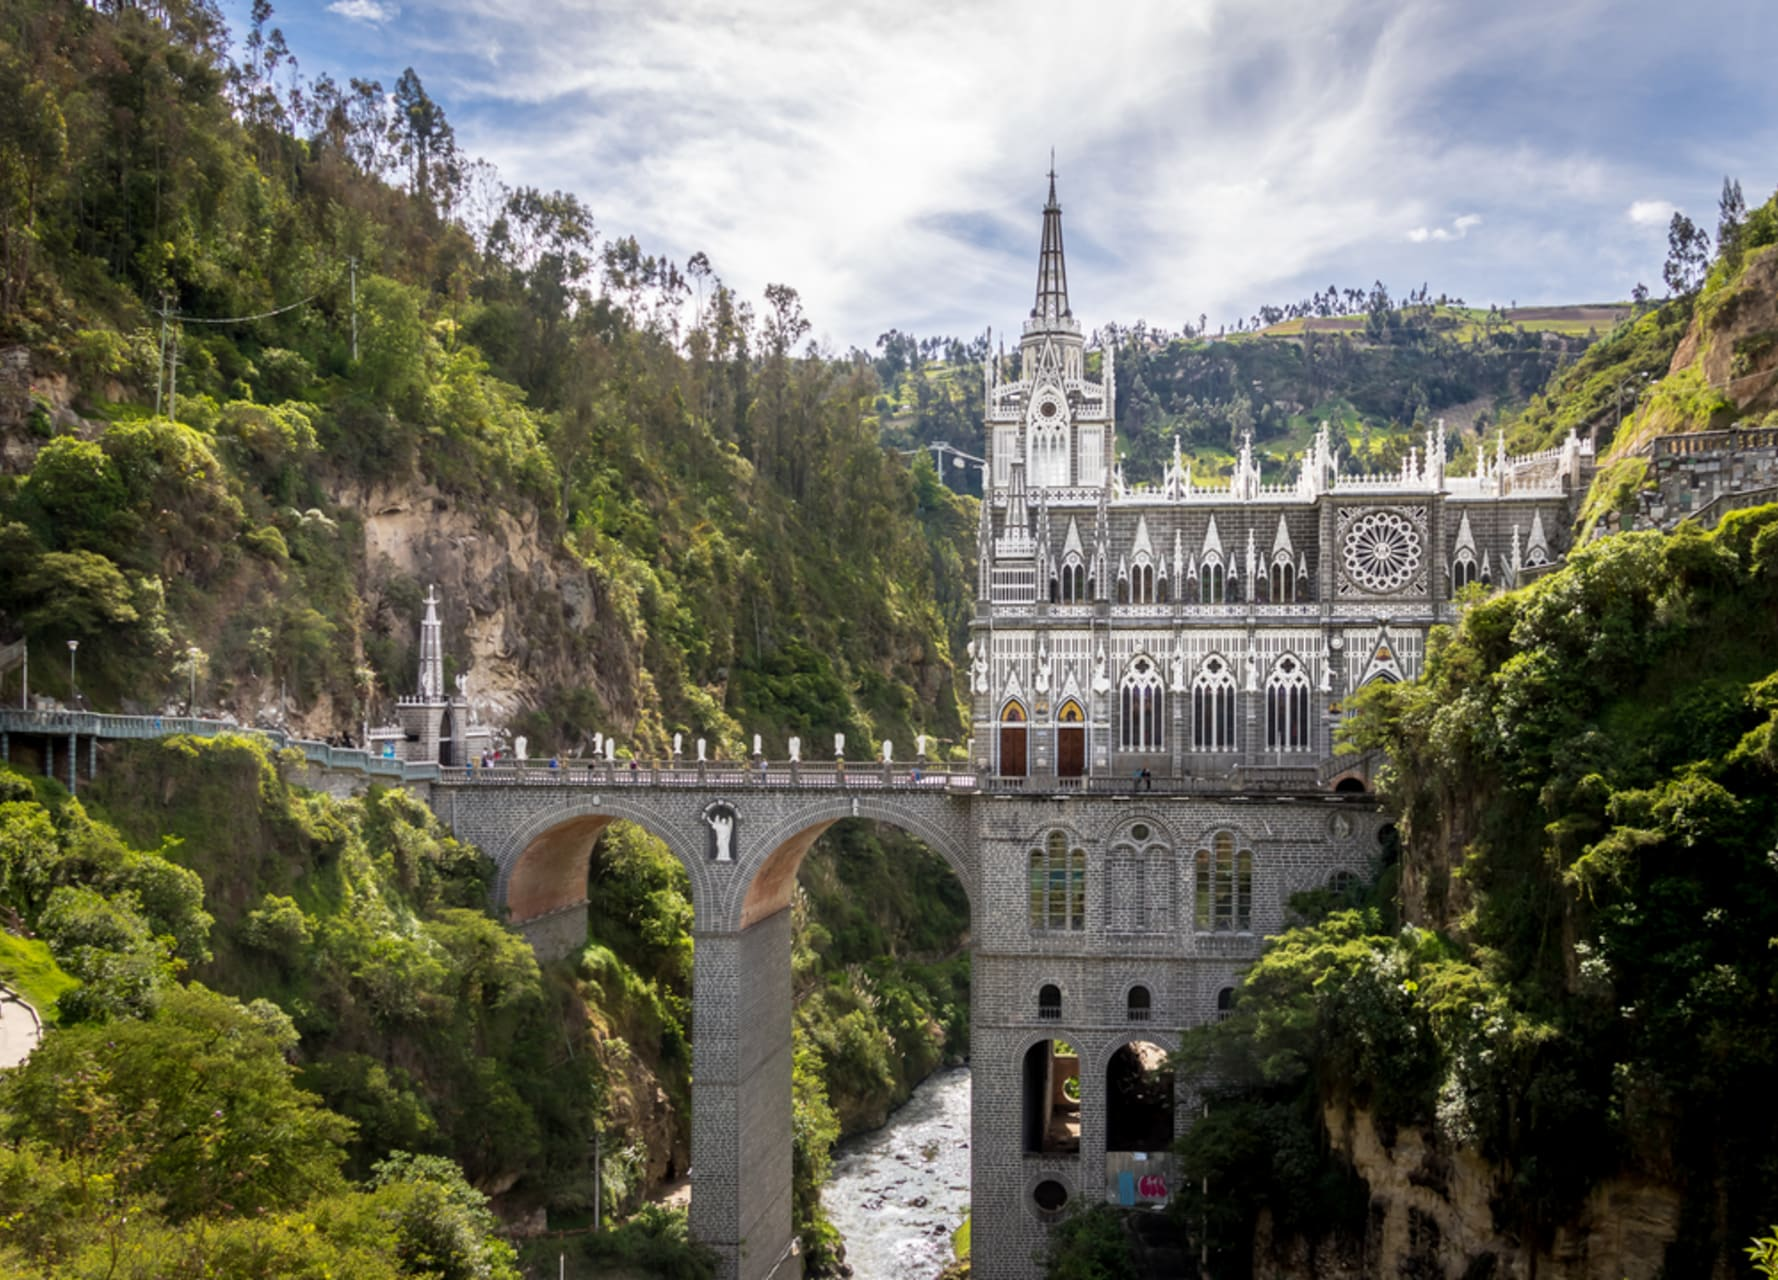 Pasto - Welcome to Las Lajas sanctuary: The Gothic jewel of southern Colombia